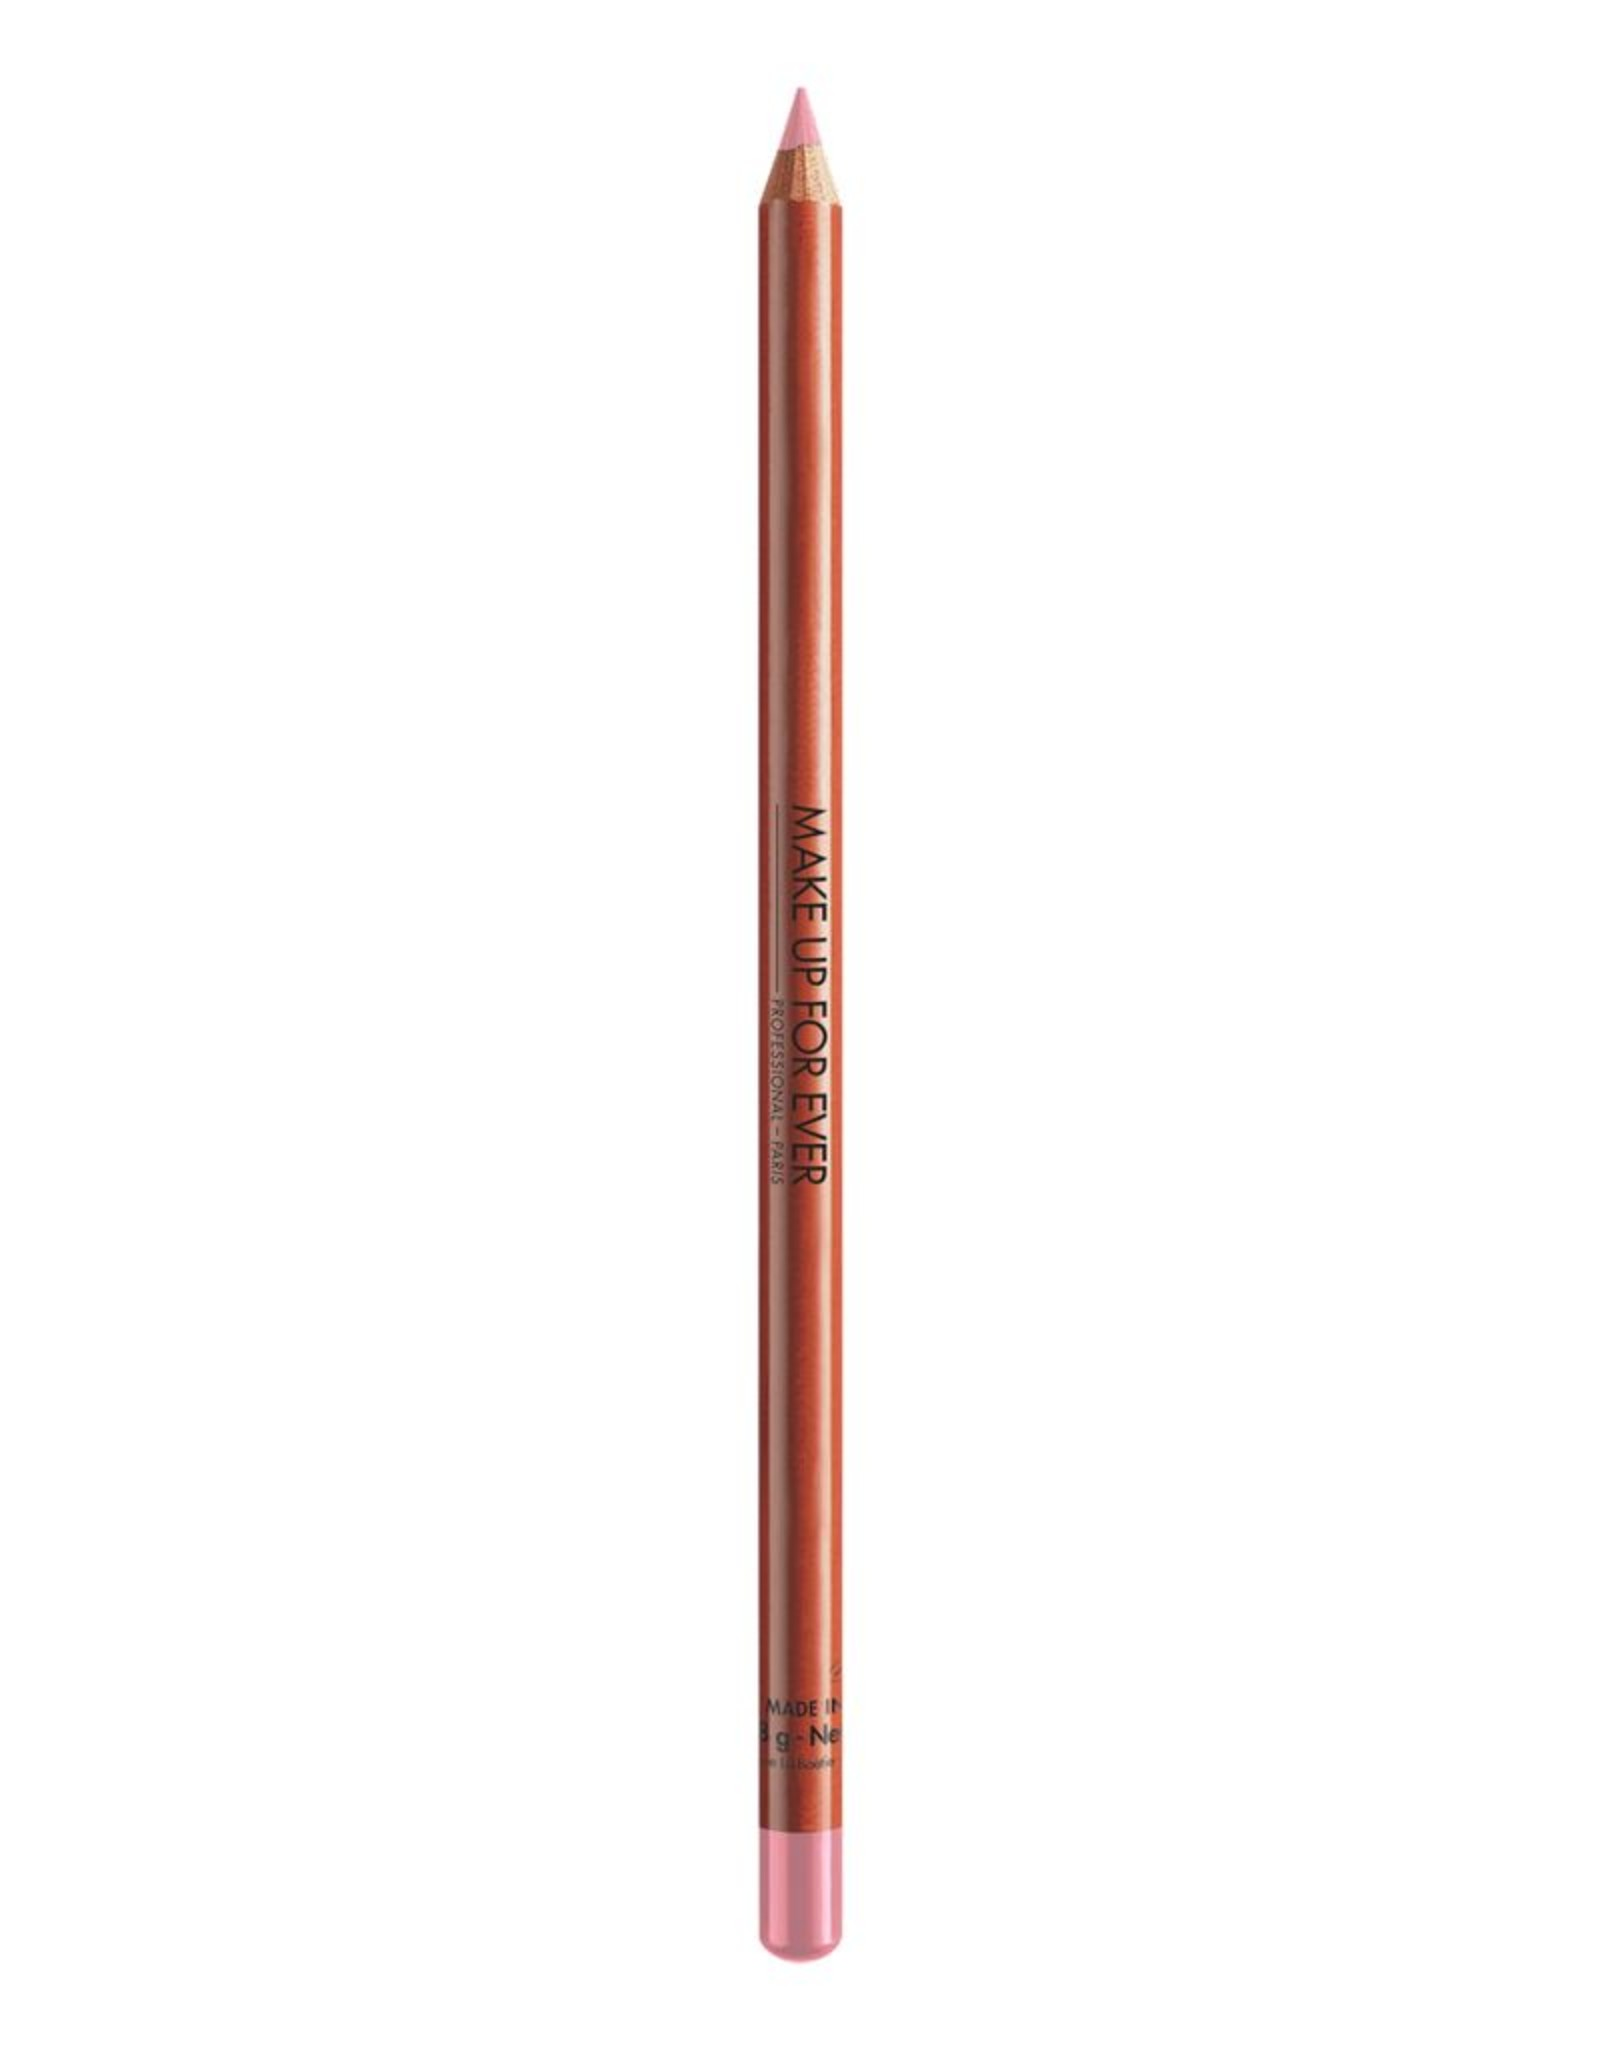 MUFE CRAYON LEVRES 1,8g N44 rose froid /  cold pink